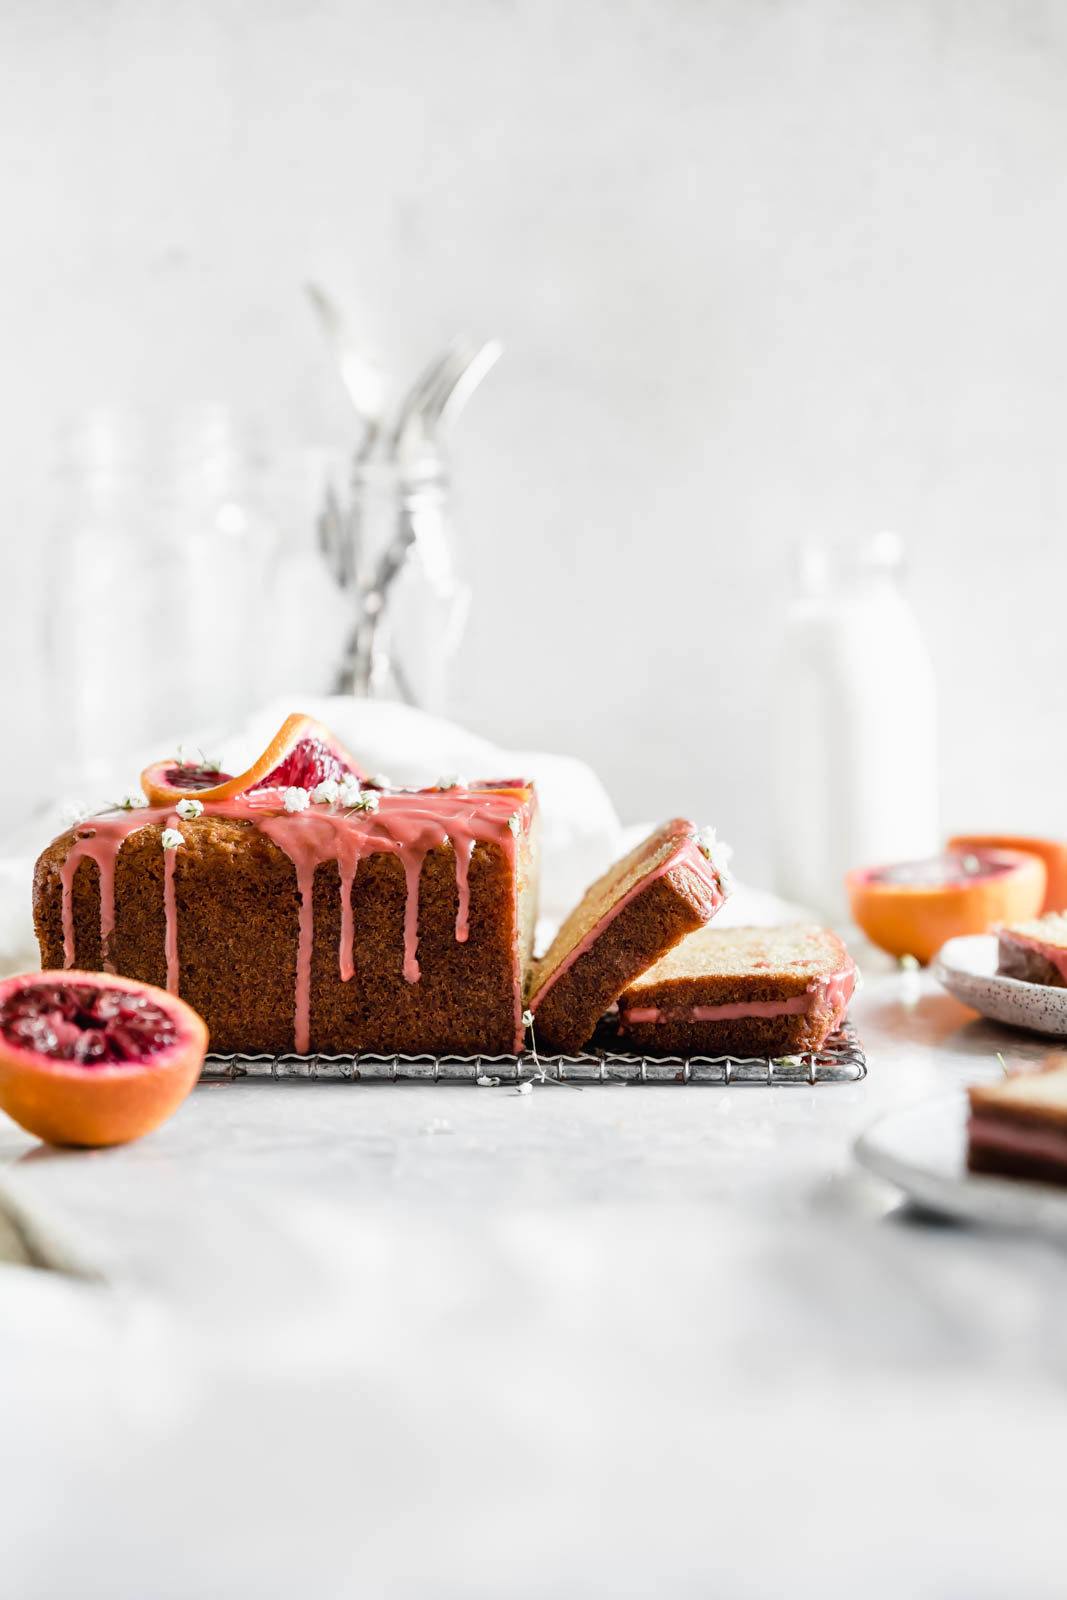 Celebrate citrus season with this beautiful blood orange loaf cake made with greek yogurt and topped with the perfect tangy pink glaze.